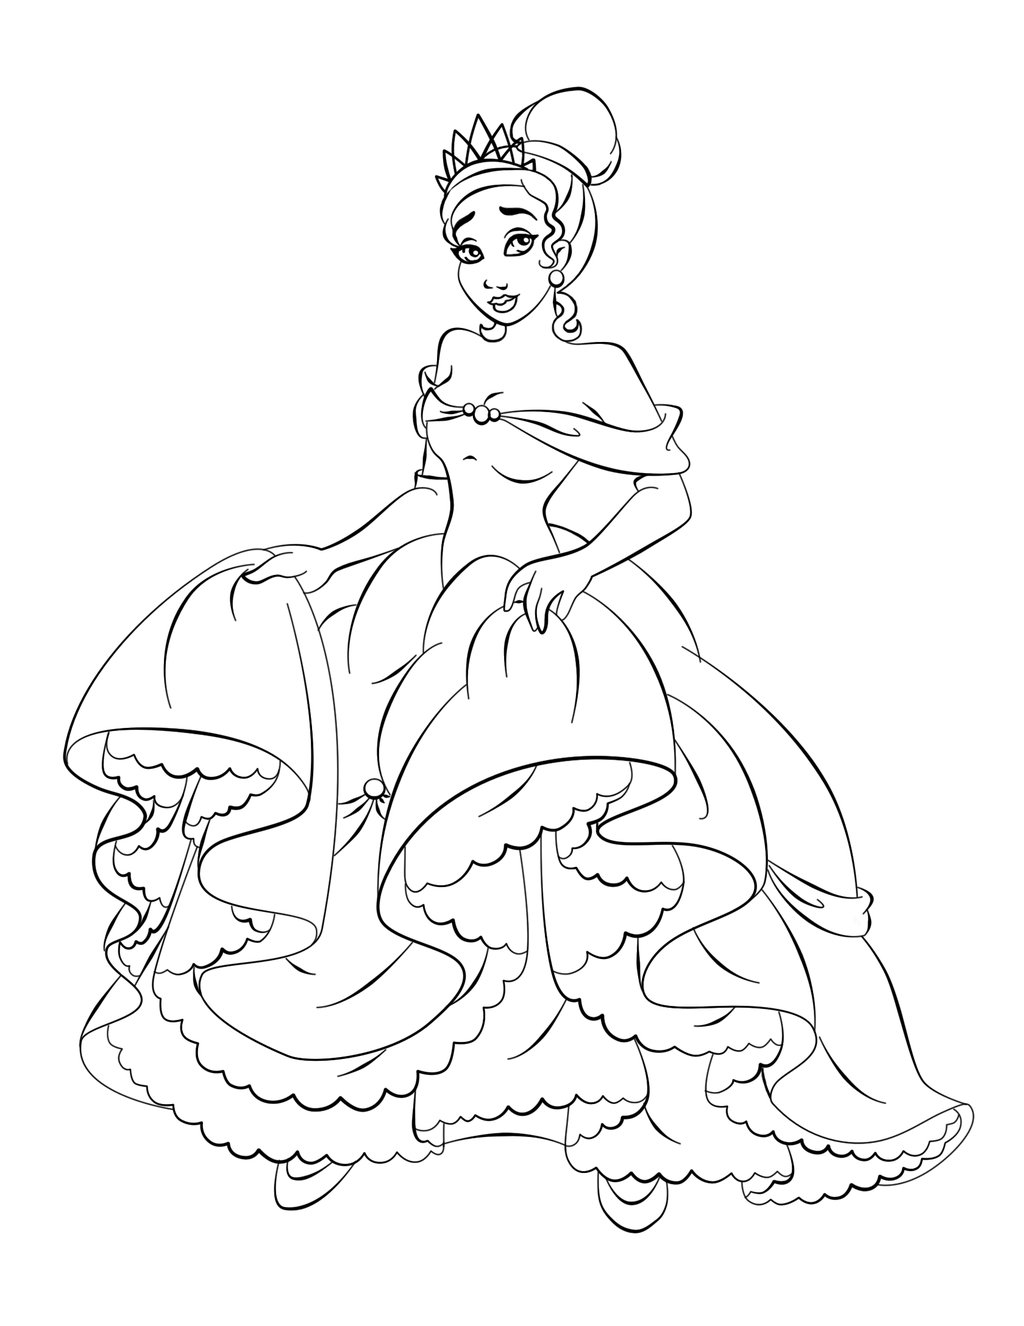 Princess Tiana Coloring Pages Download And Print For Free Coloring Pages Princess